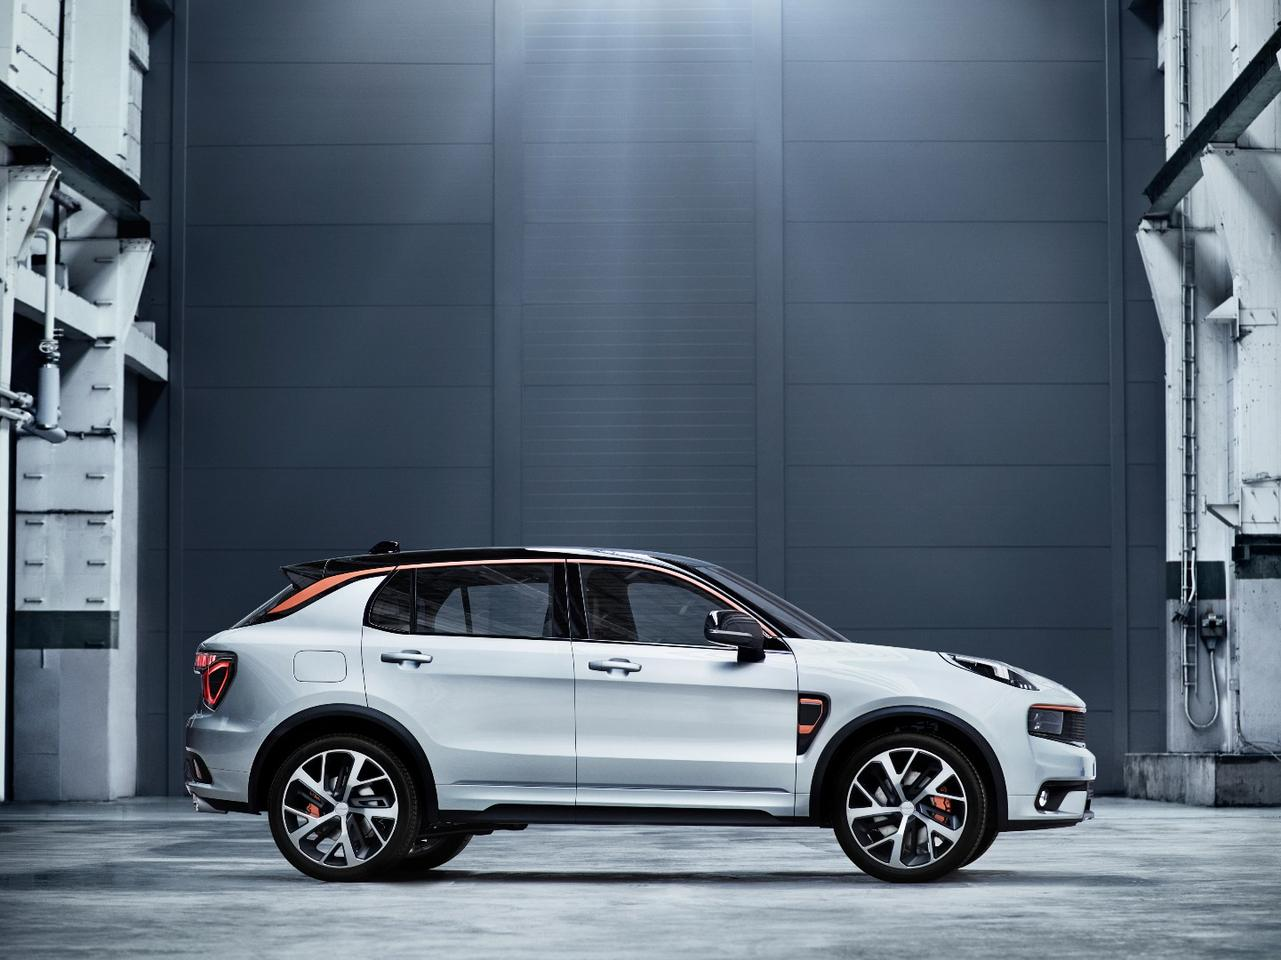 The Lynk &Co 01 shares parts with Volvos